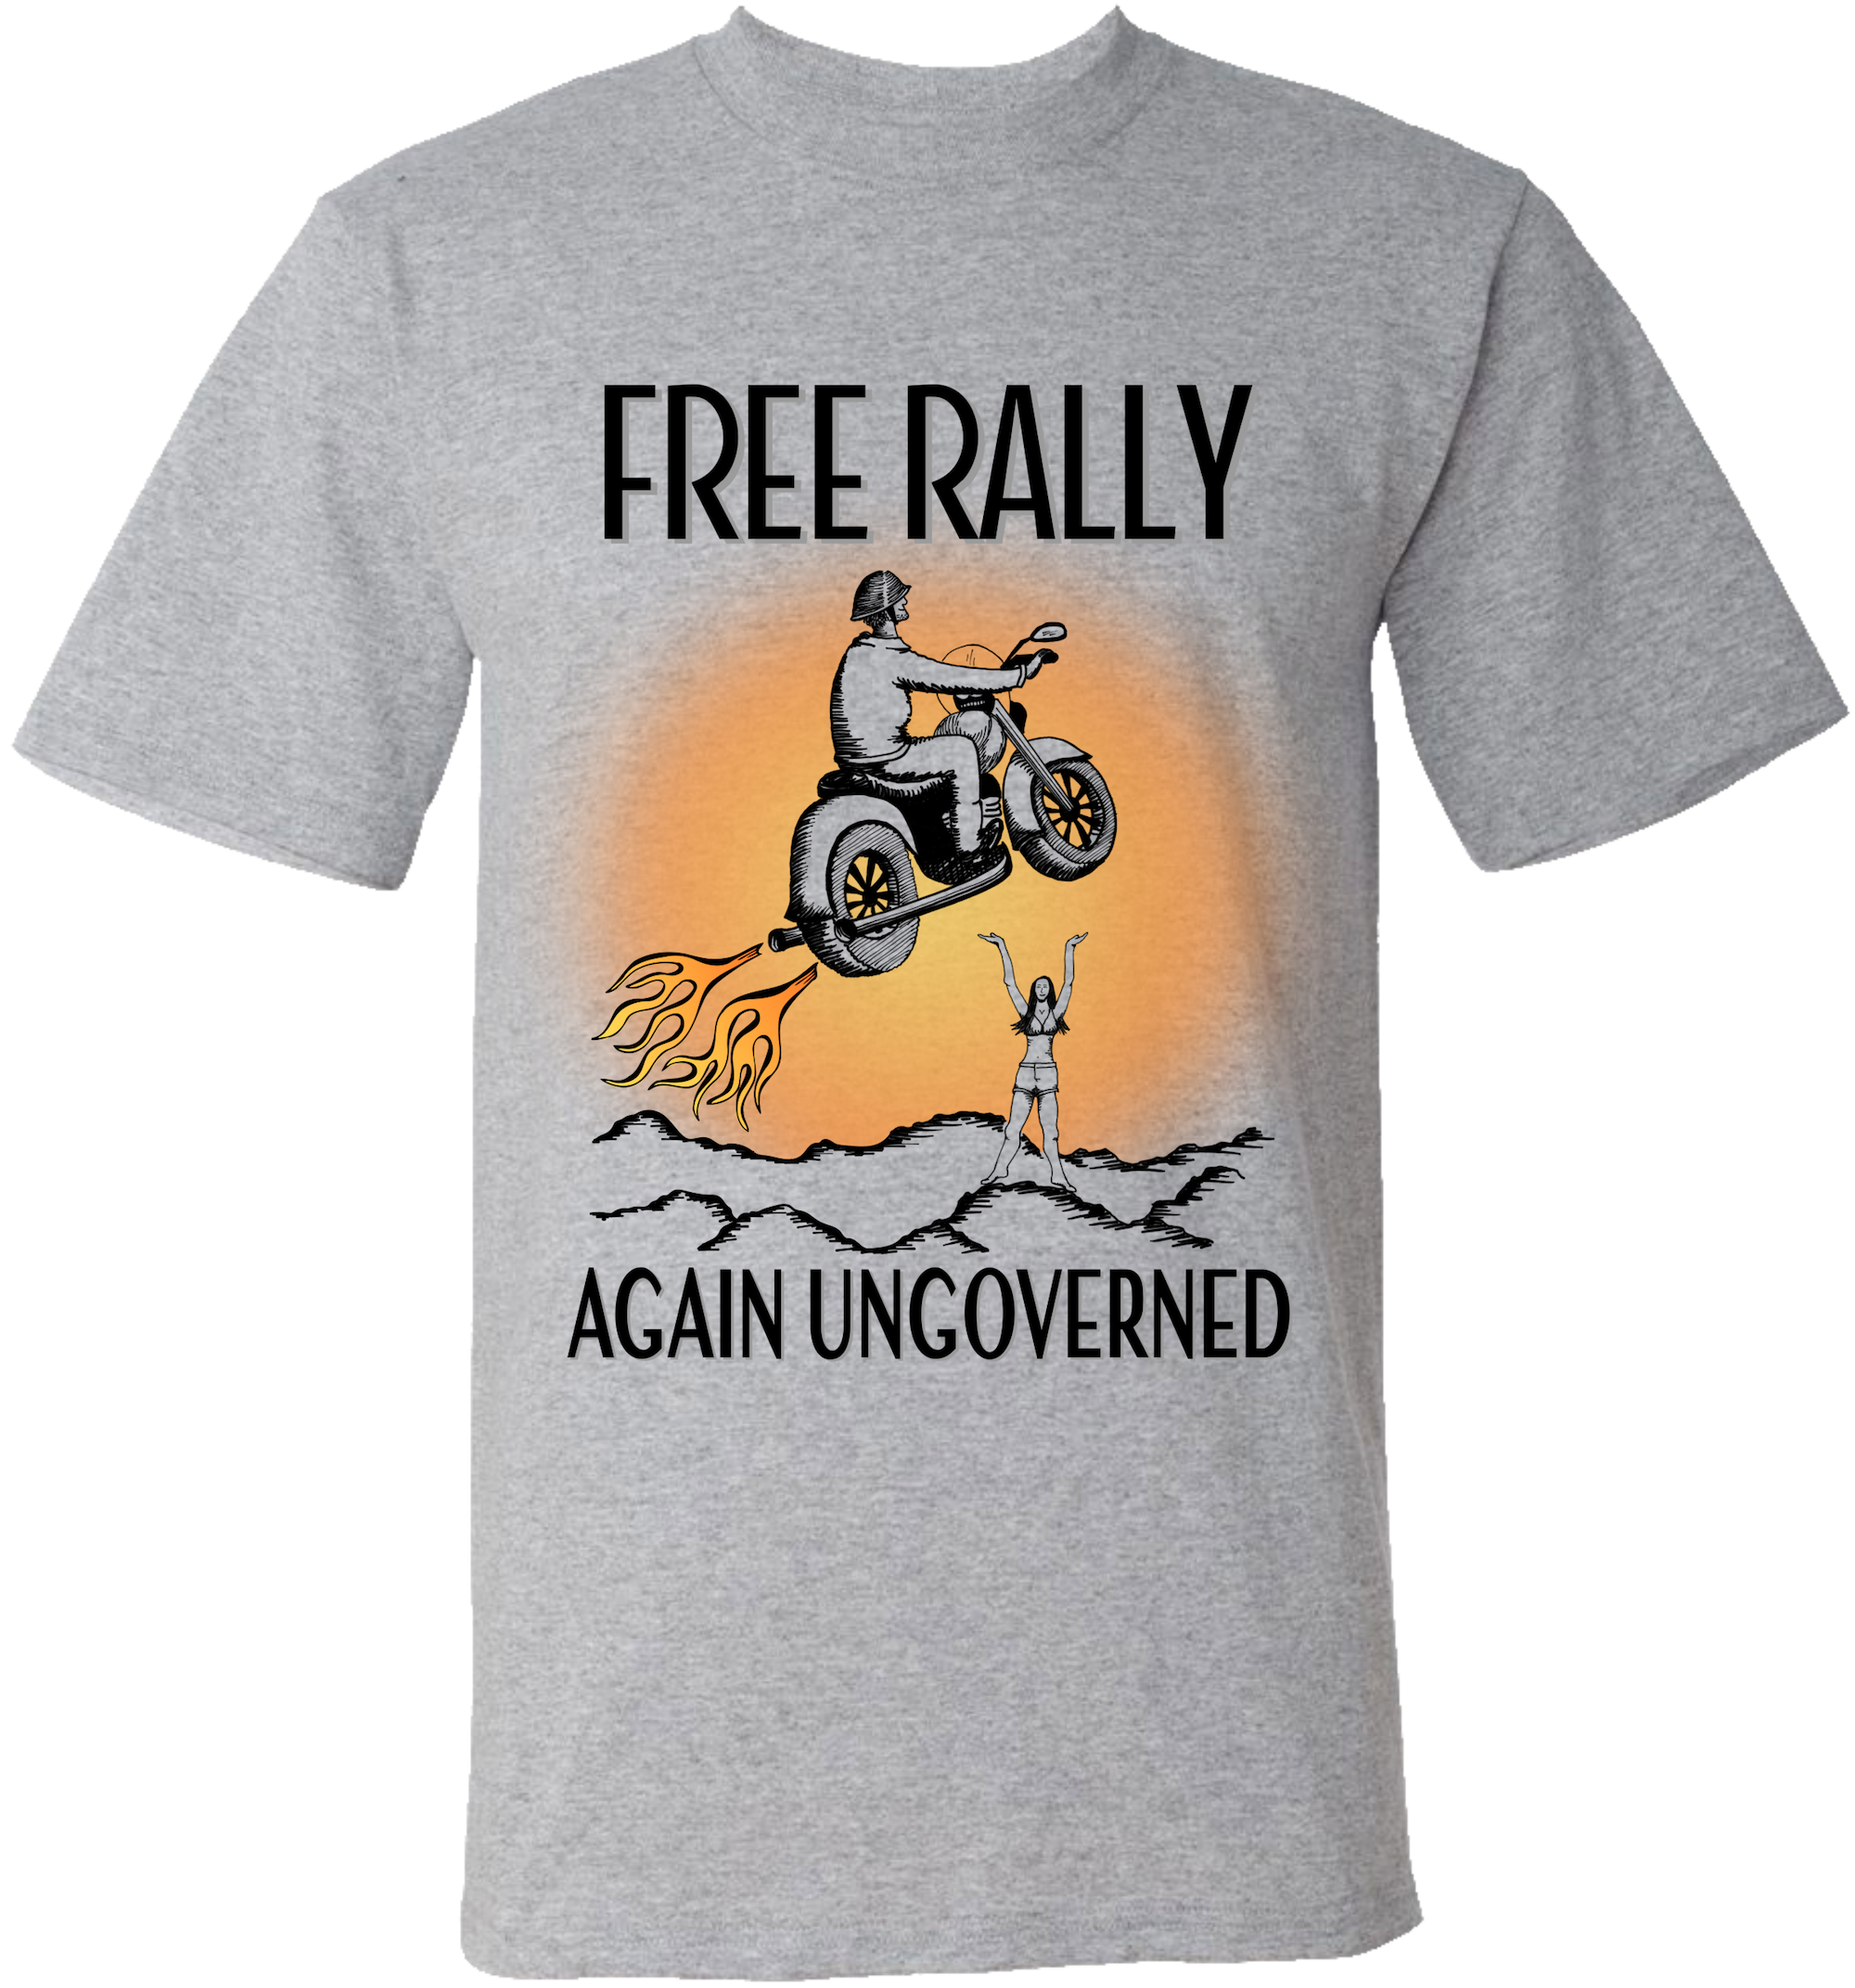 FREE RALLY - Again Ungoverned